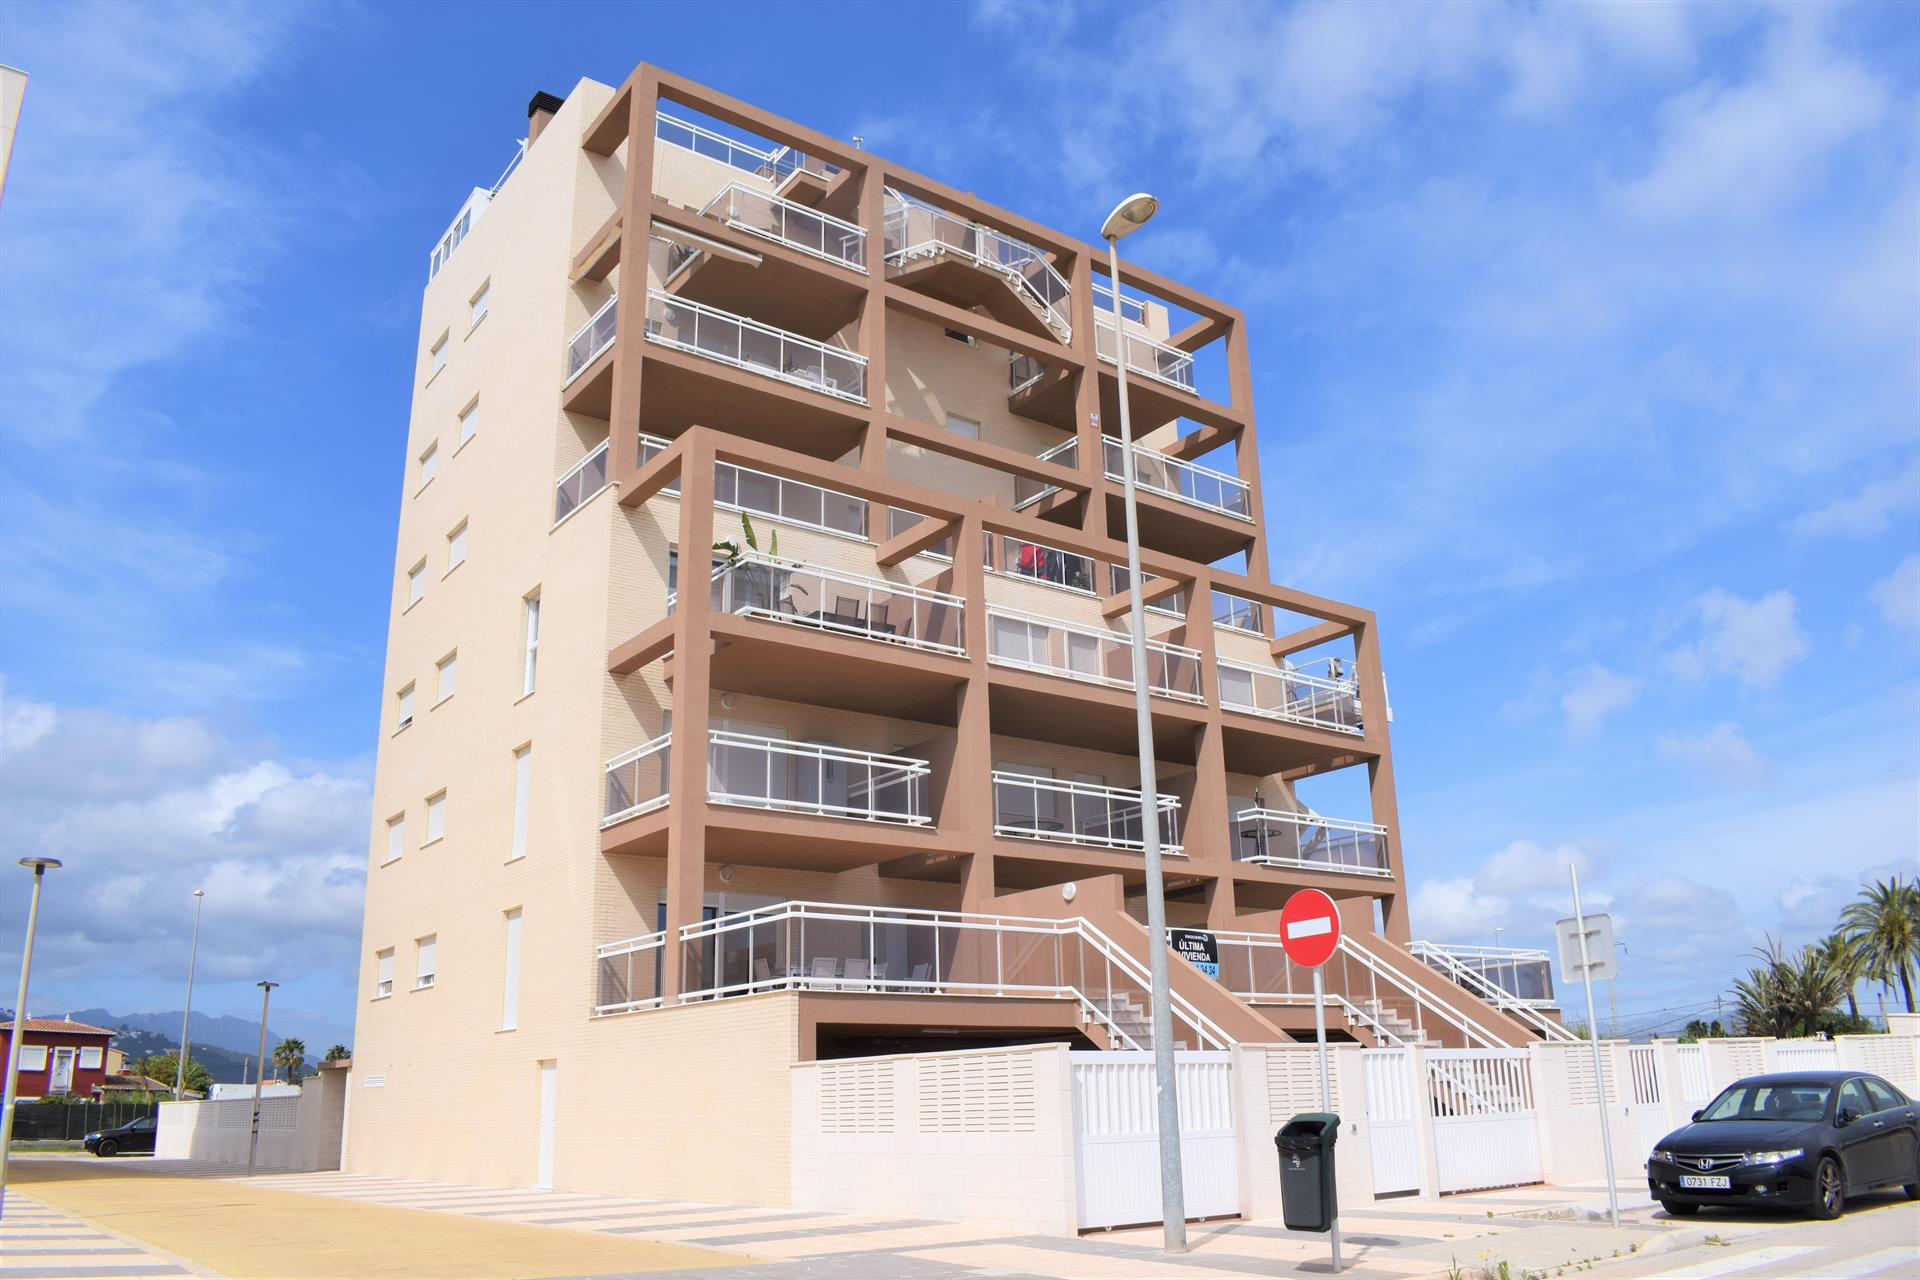 Burguera Terranova AP125,Modern and comfortable apartment in Oliva, on the Costa Blanca, Spain  with communal pool for 4 persons.....